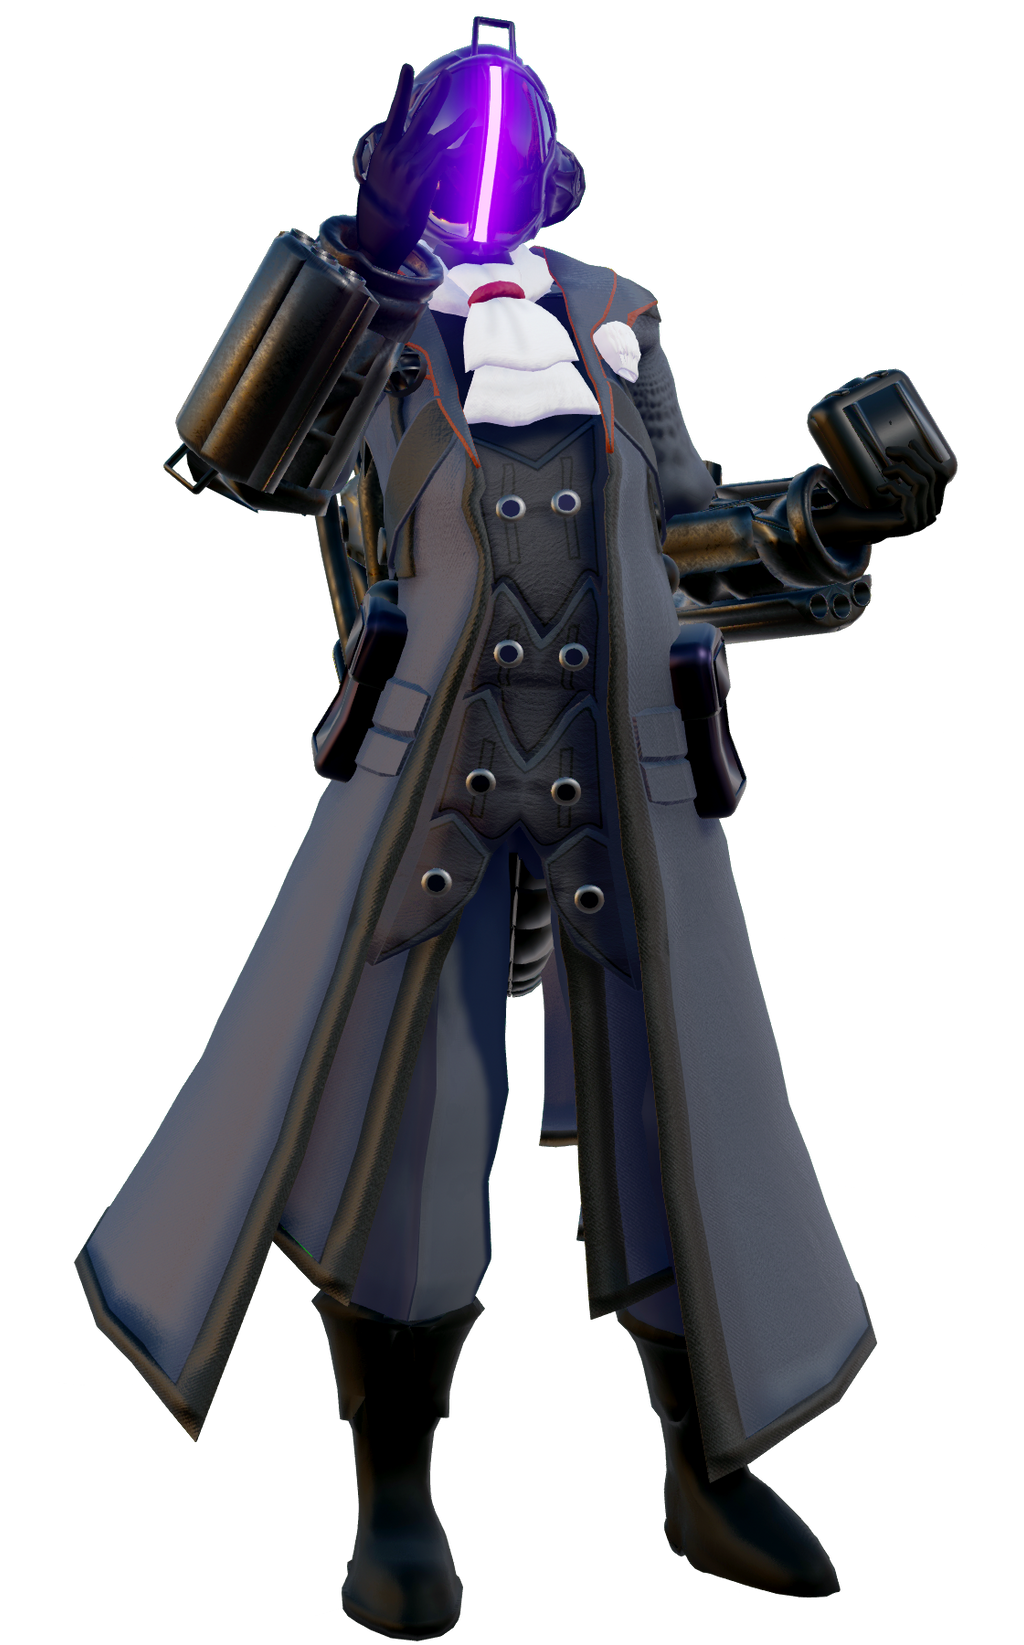 MMD] Bondrewd by Snorlaxin on DeviantArt